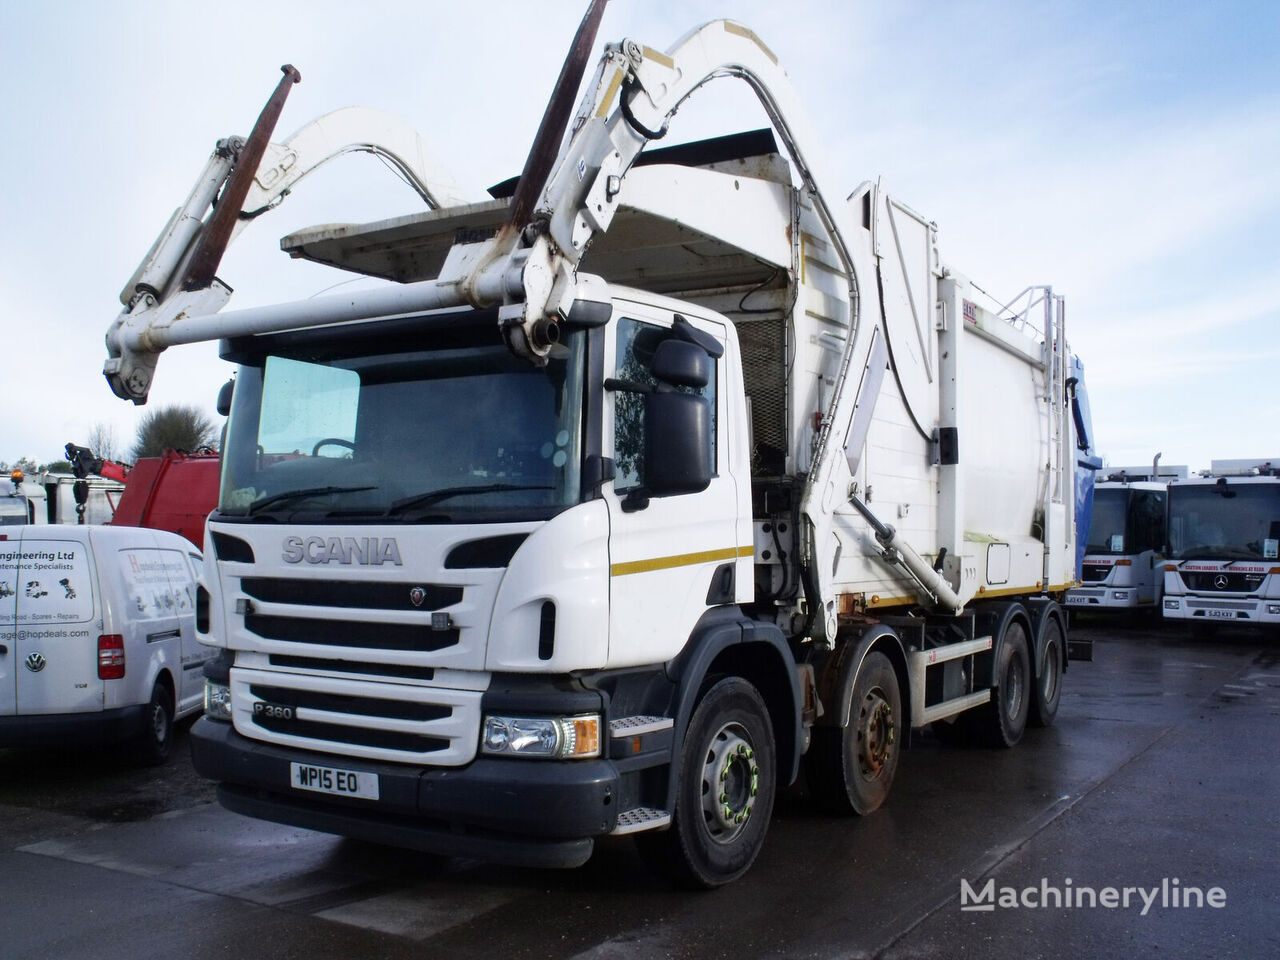 SCANIA P360 garbage truck